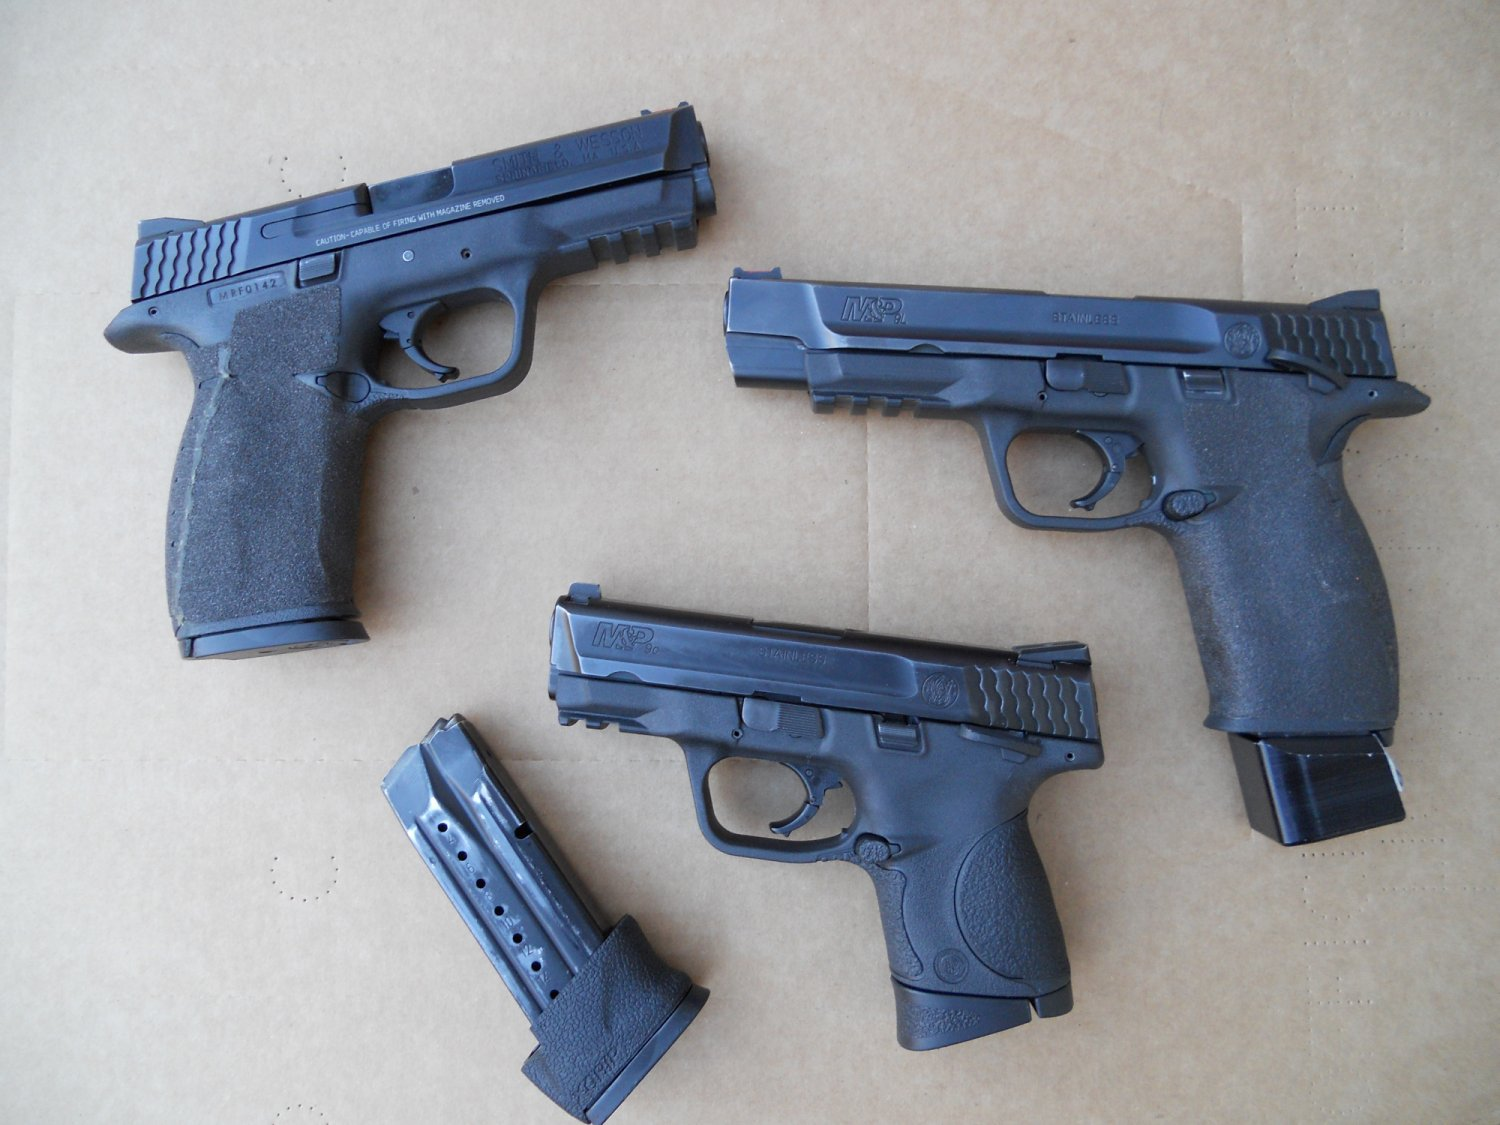 Smith  Wesson SW MP9 Pistols Jeff Gurwitch 1 <!  :en  >Smith & Wesson (S&W) M&P High Capacity Tactical Pistols for Competition and Personal Protection: An In Depth Military Operator/Competition Shooters Analysis (Photos and Video!)<!  :  >